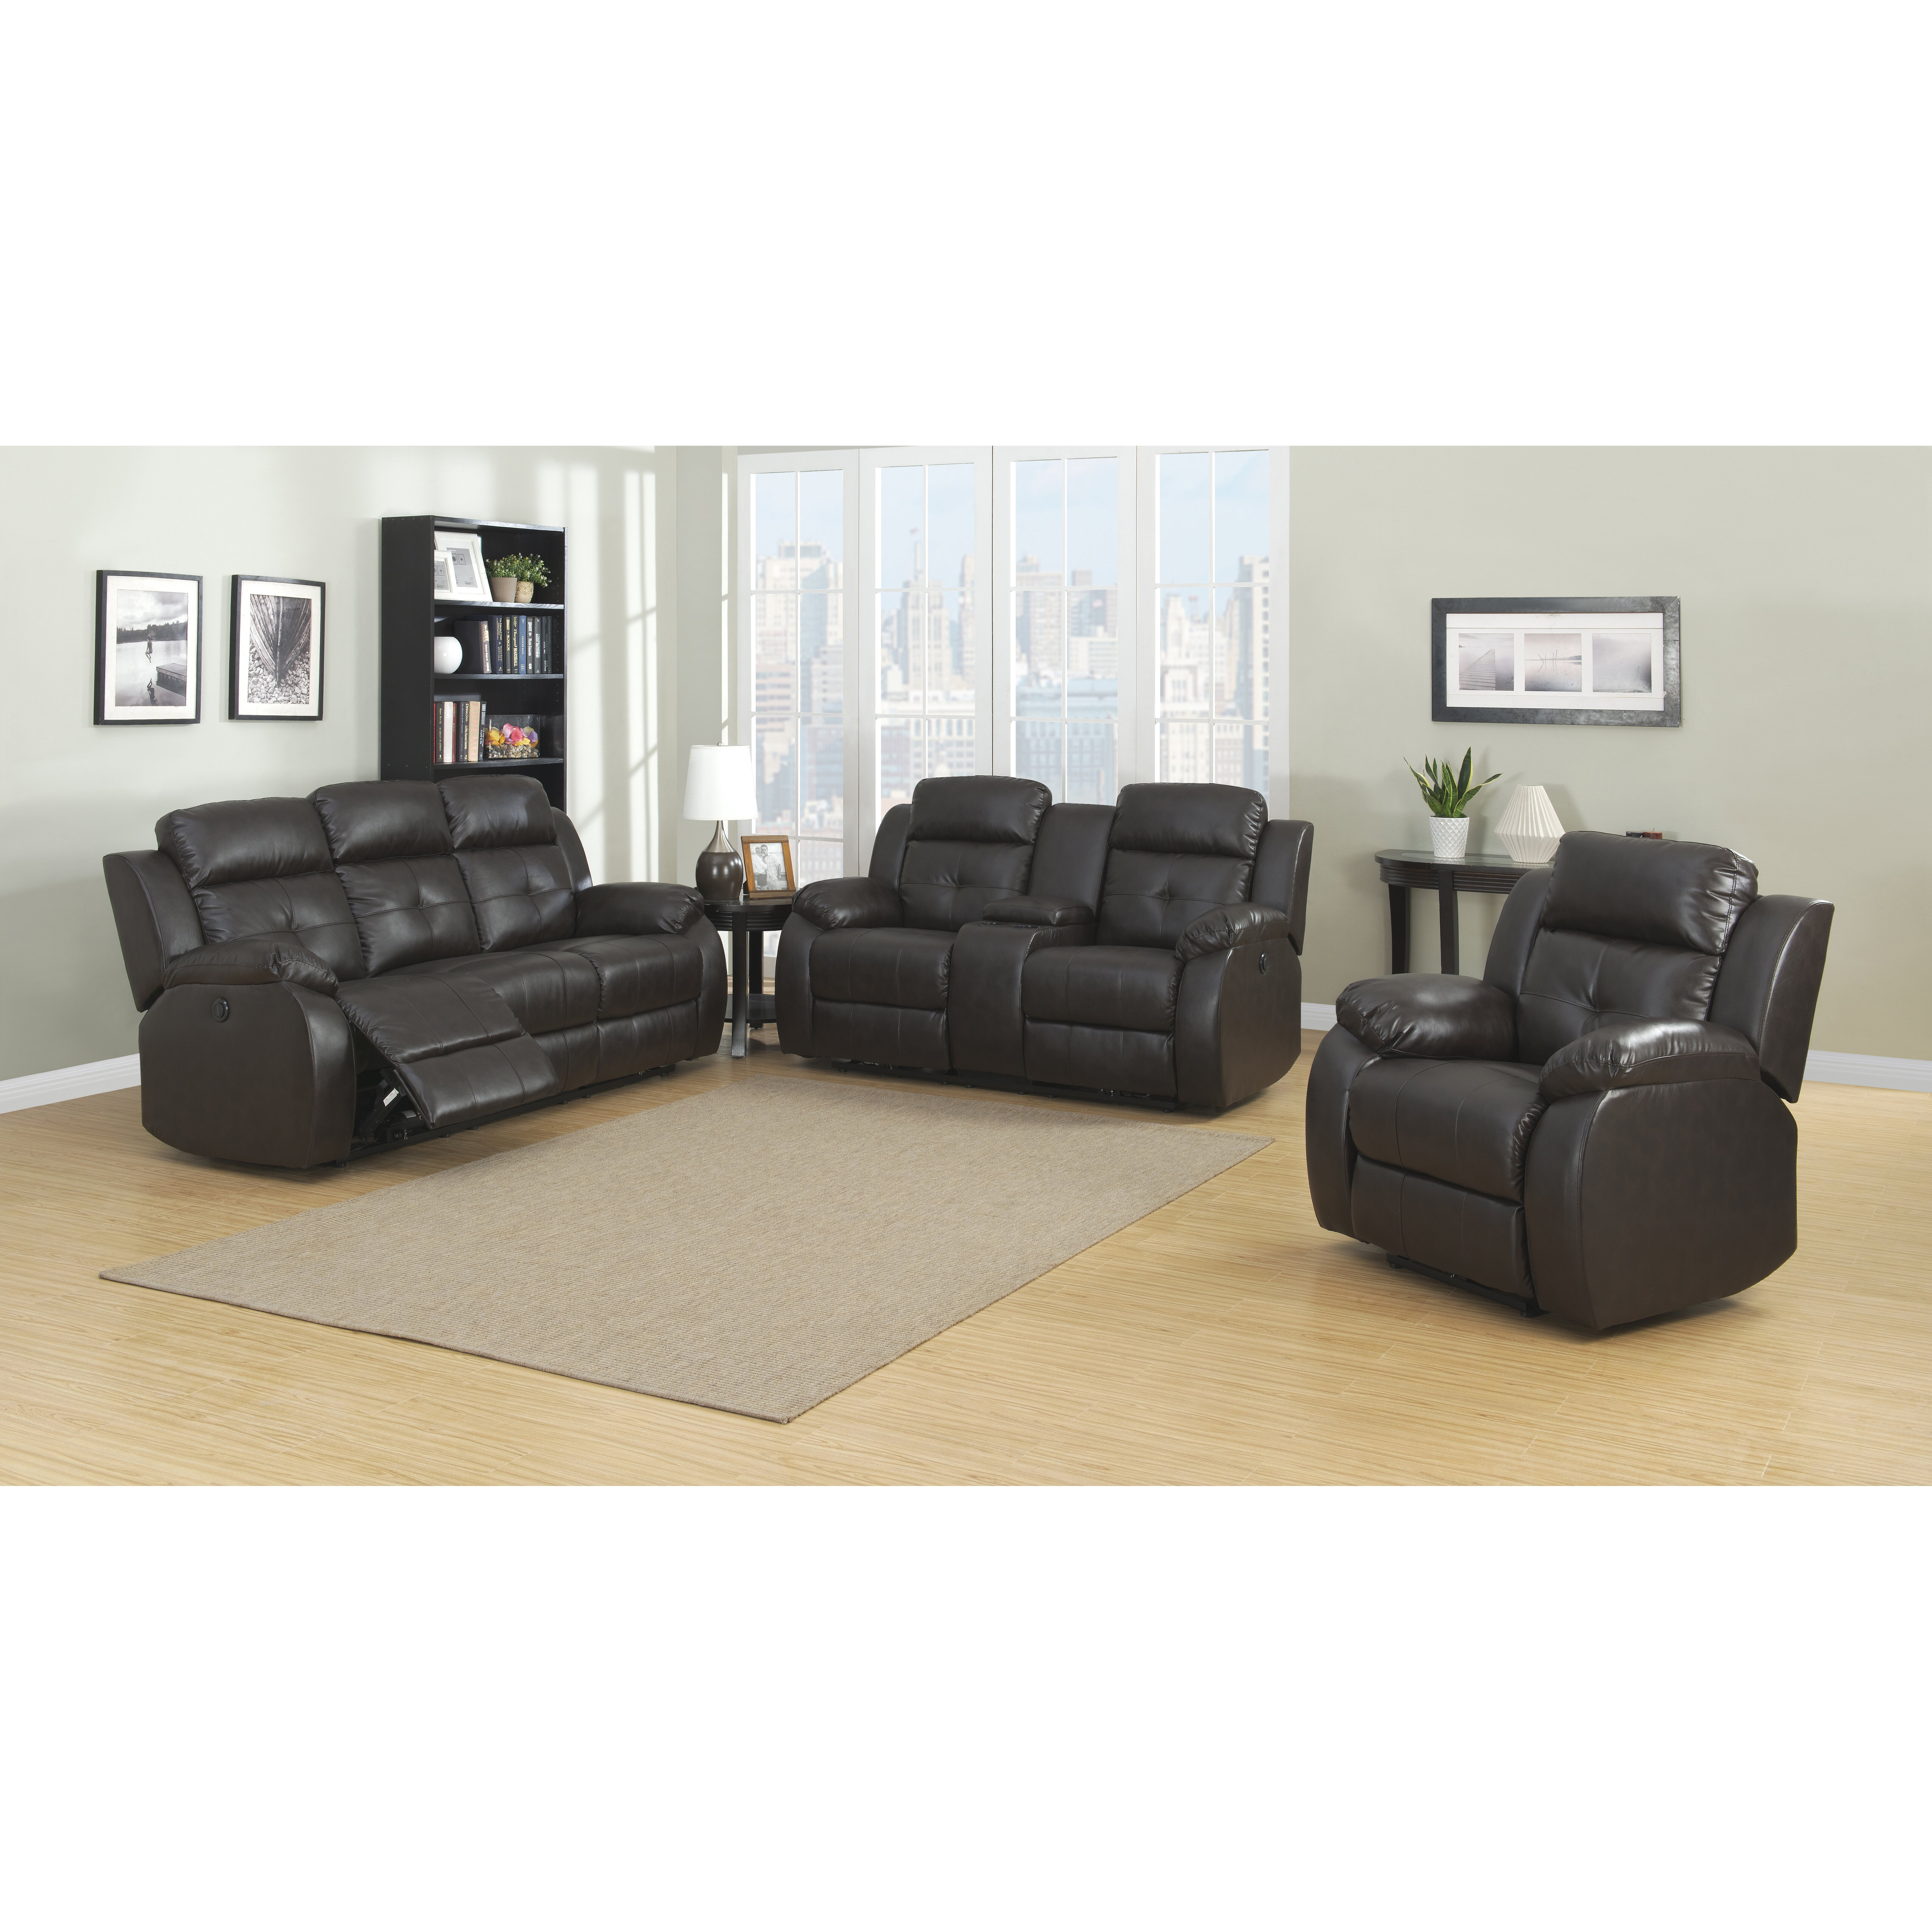 Ac pacific troy power 3 piece reclining living room set for 3 piece living room set